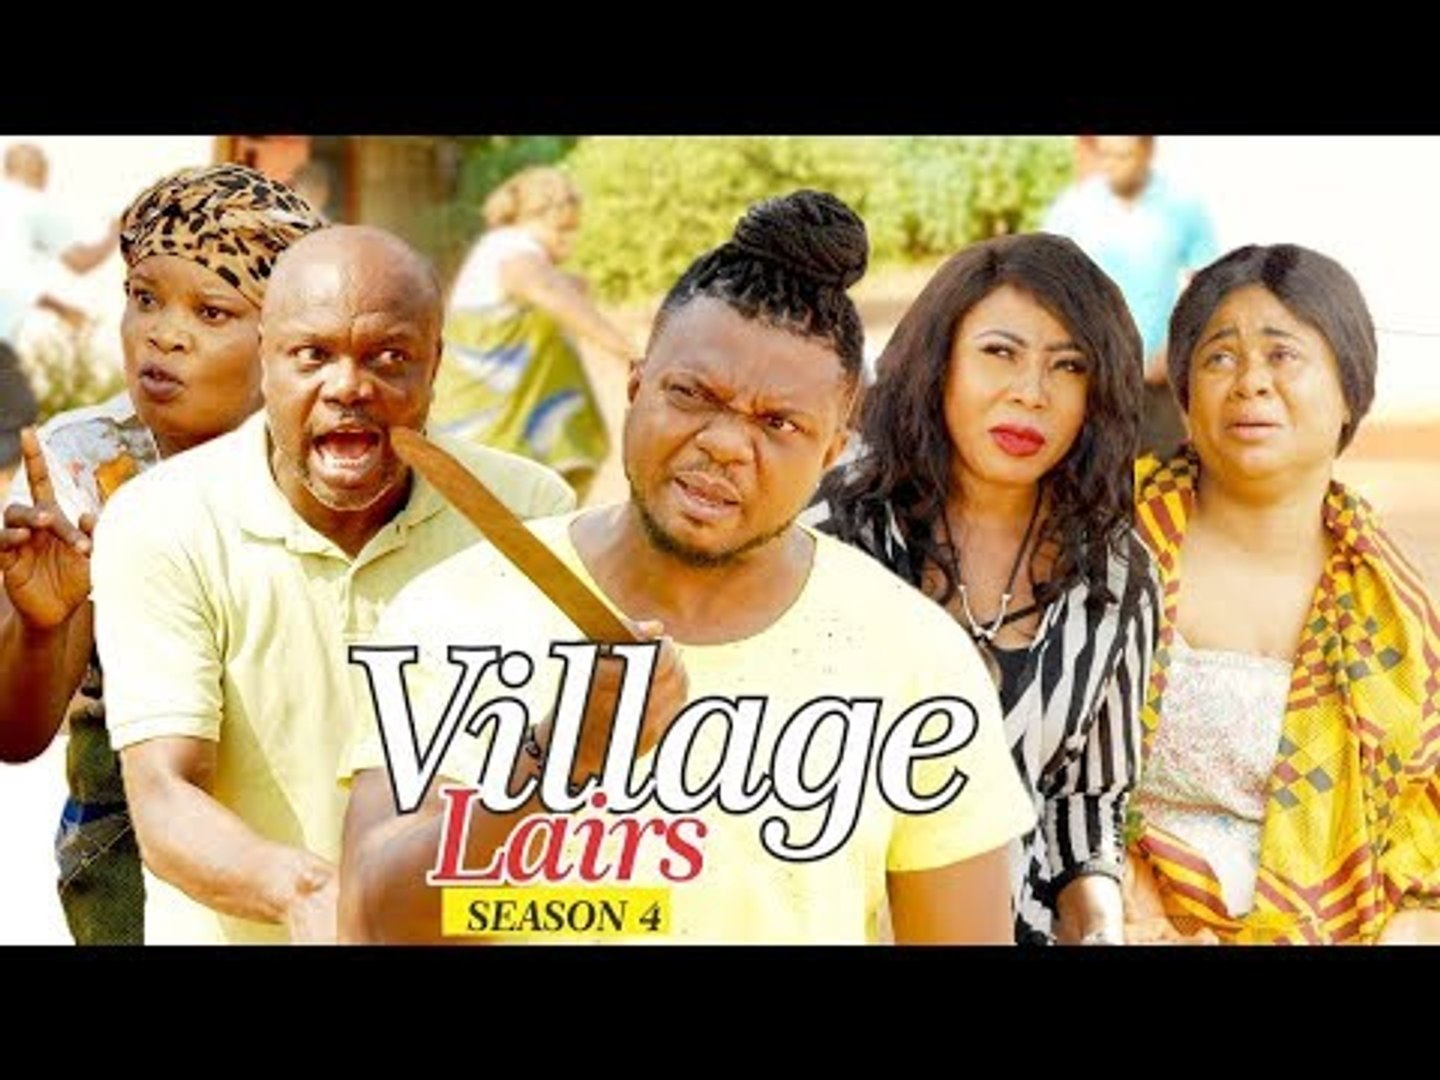 VILLAGE LIARS 4 - 2018 LATEST NIGERIAN NOLLYWOOD MOVIES || TRENDING NOLLYWOOD MOVIES